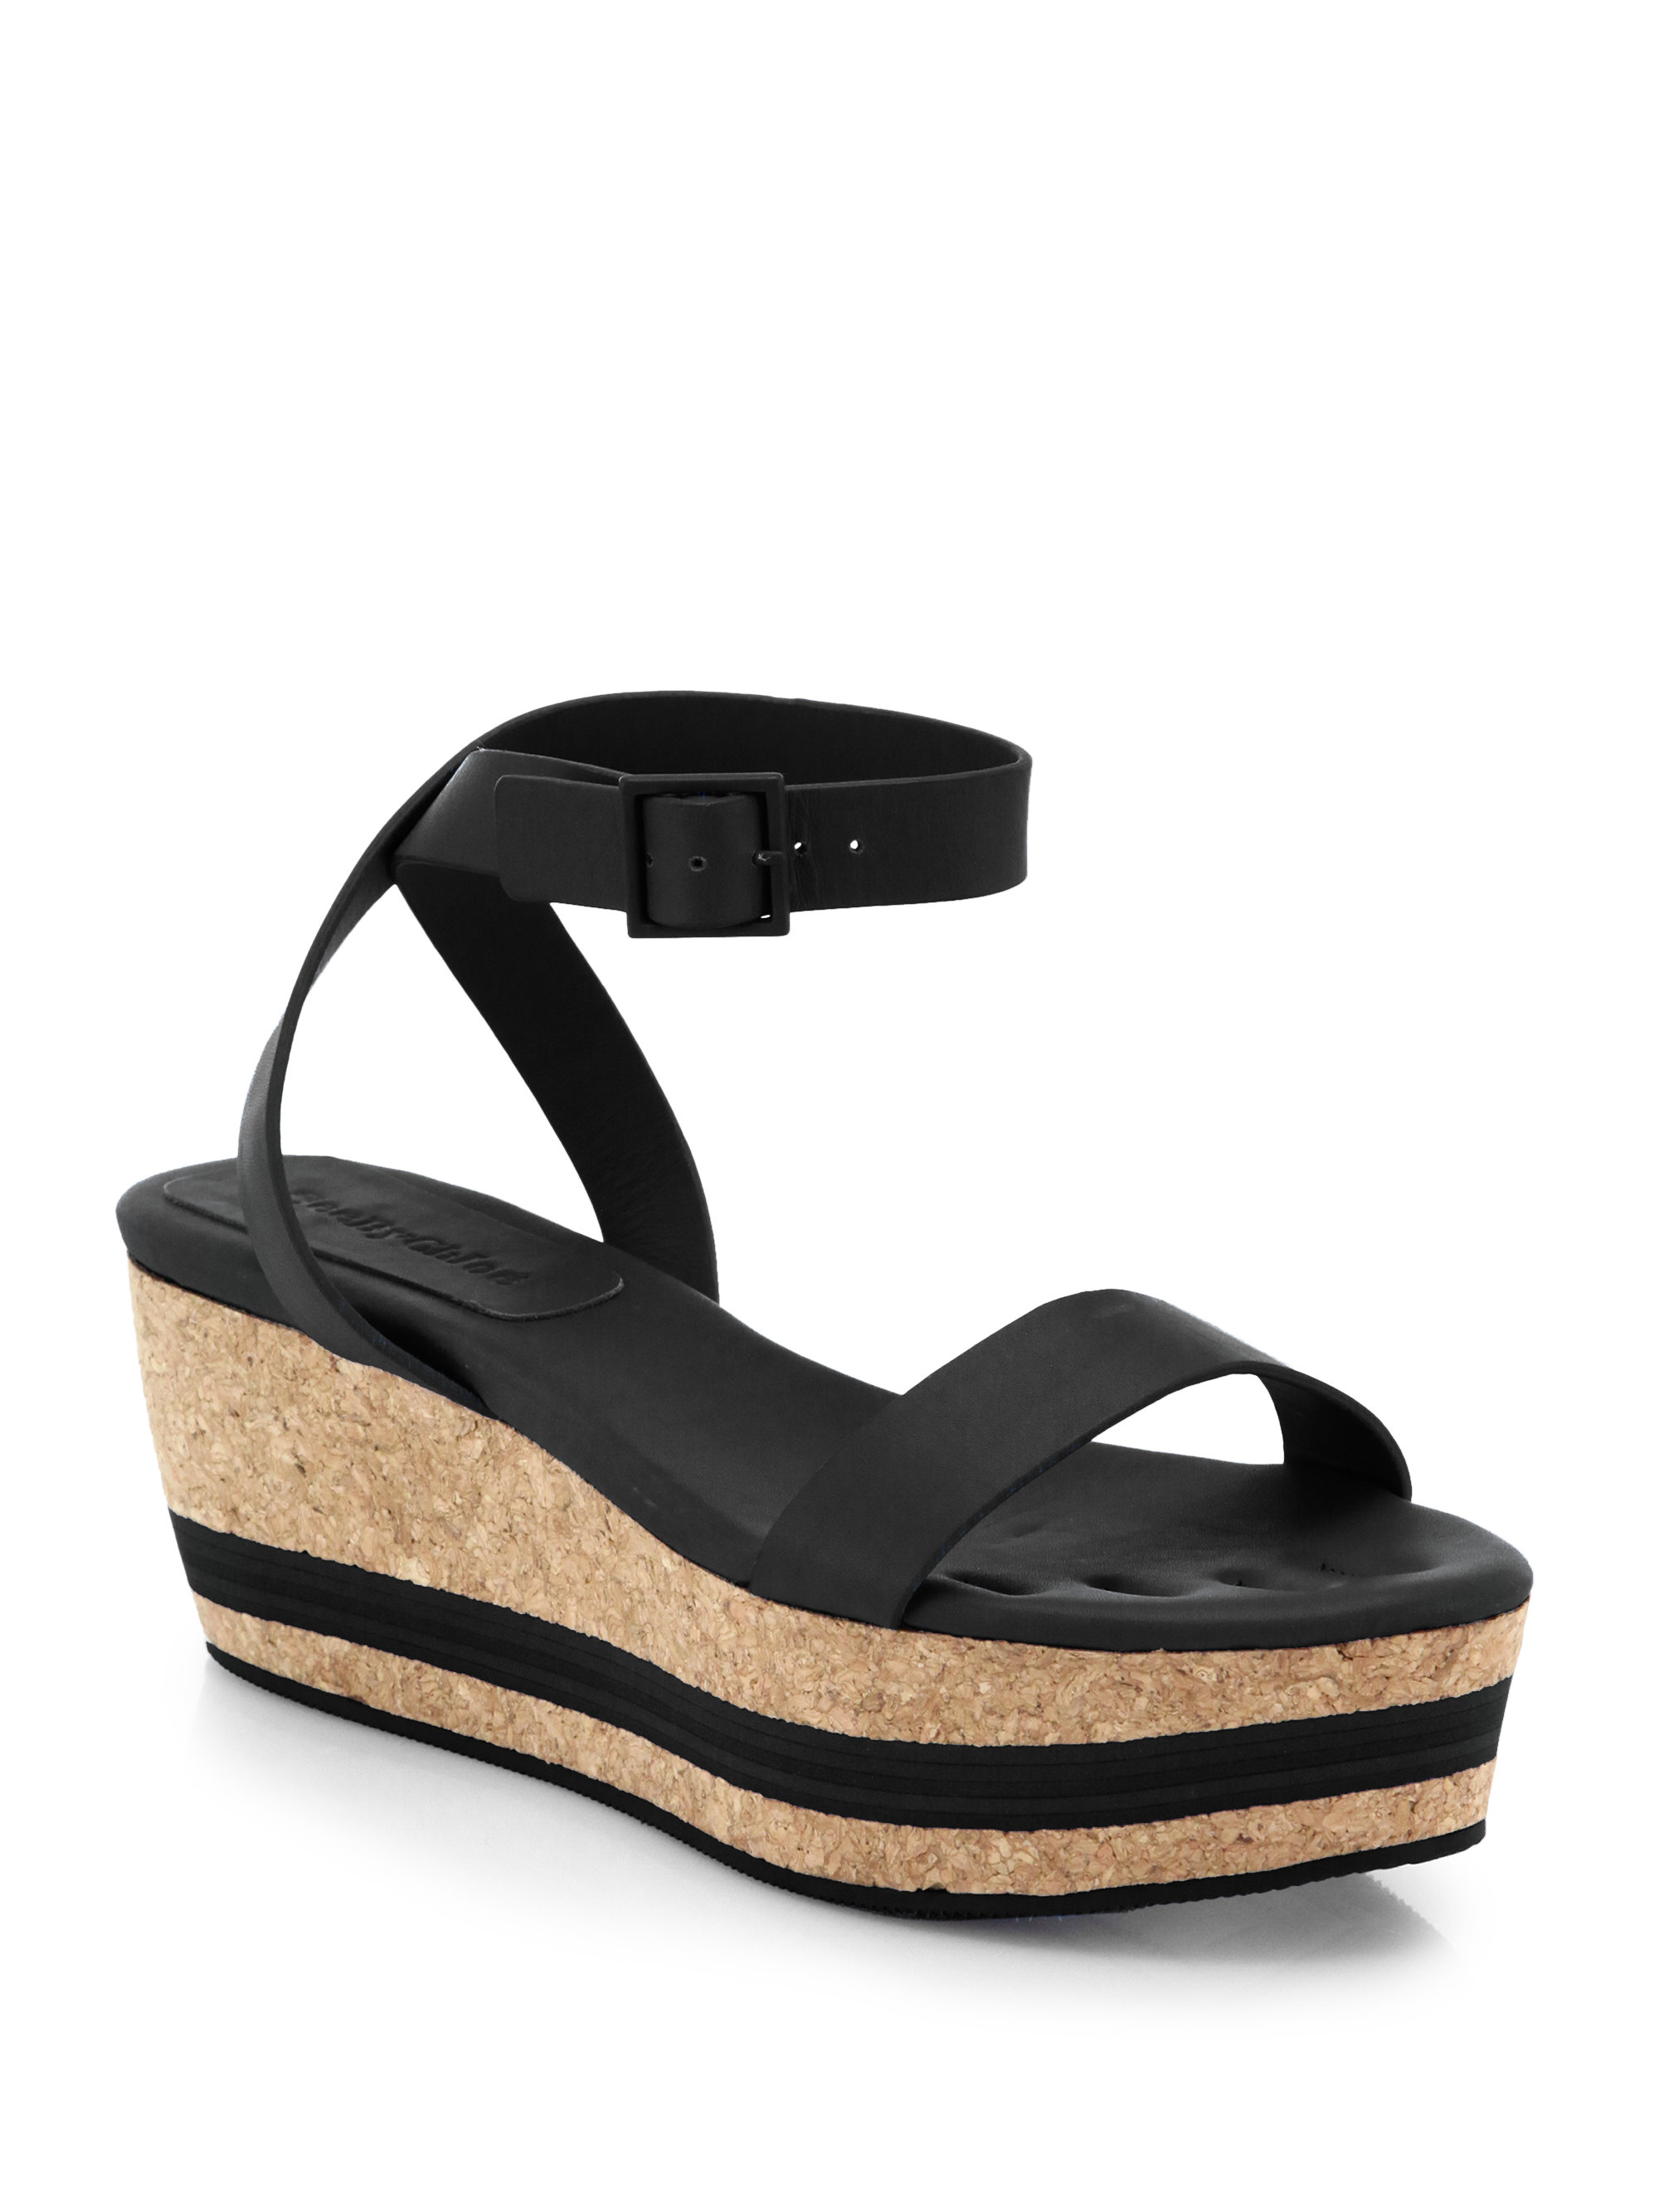 98d39c06c63 see-by-chloe-black-leather-cork-platform-sandals-product-1 -26116090-0-810130358-normal.jpeg